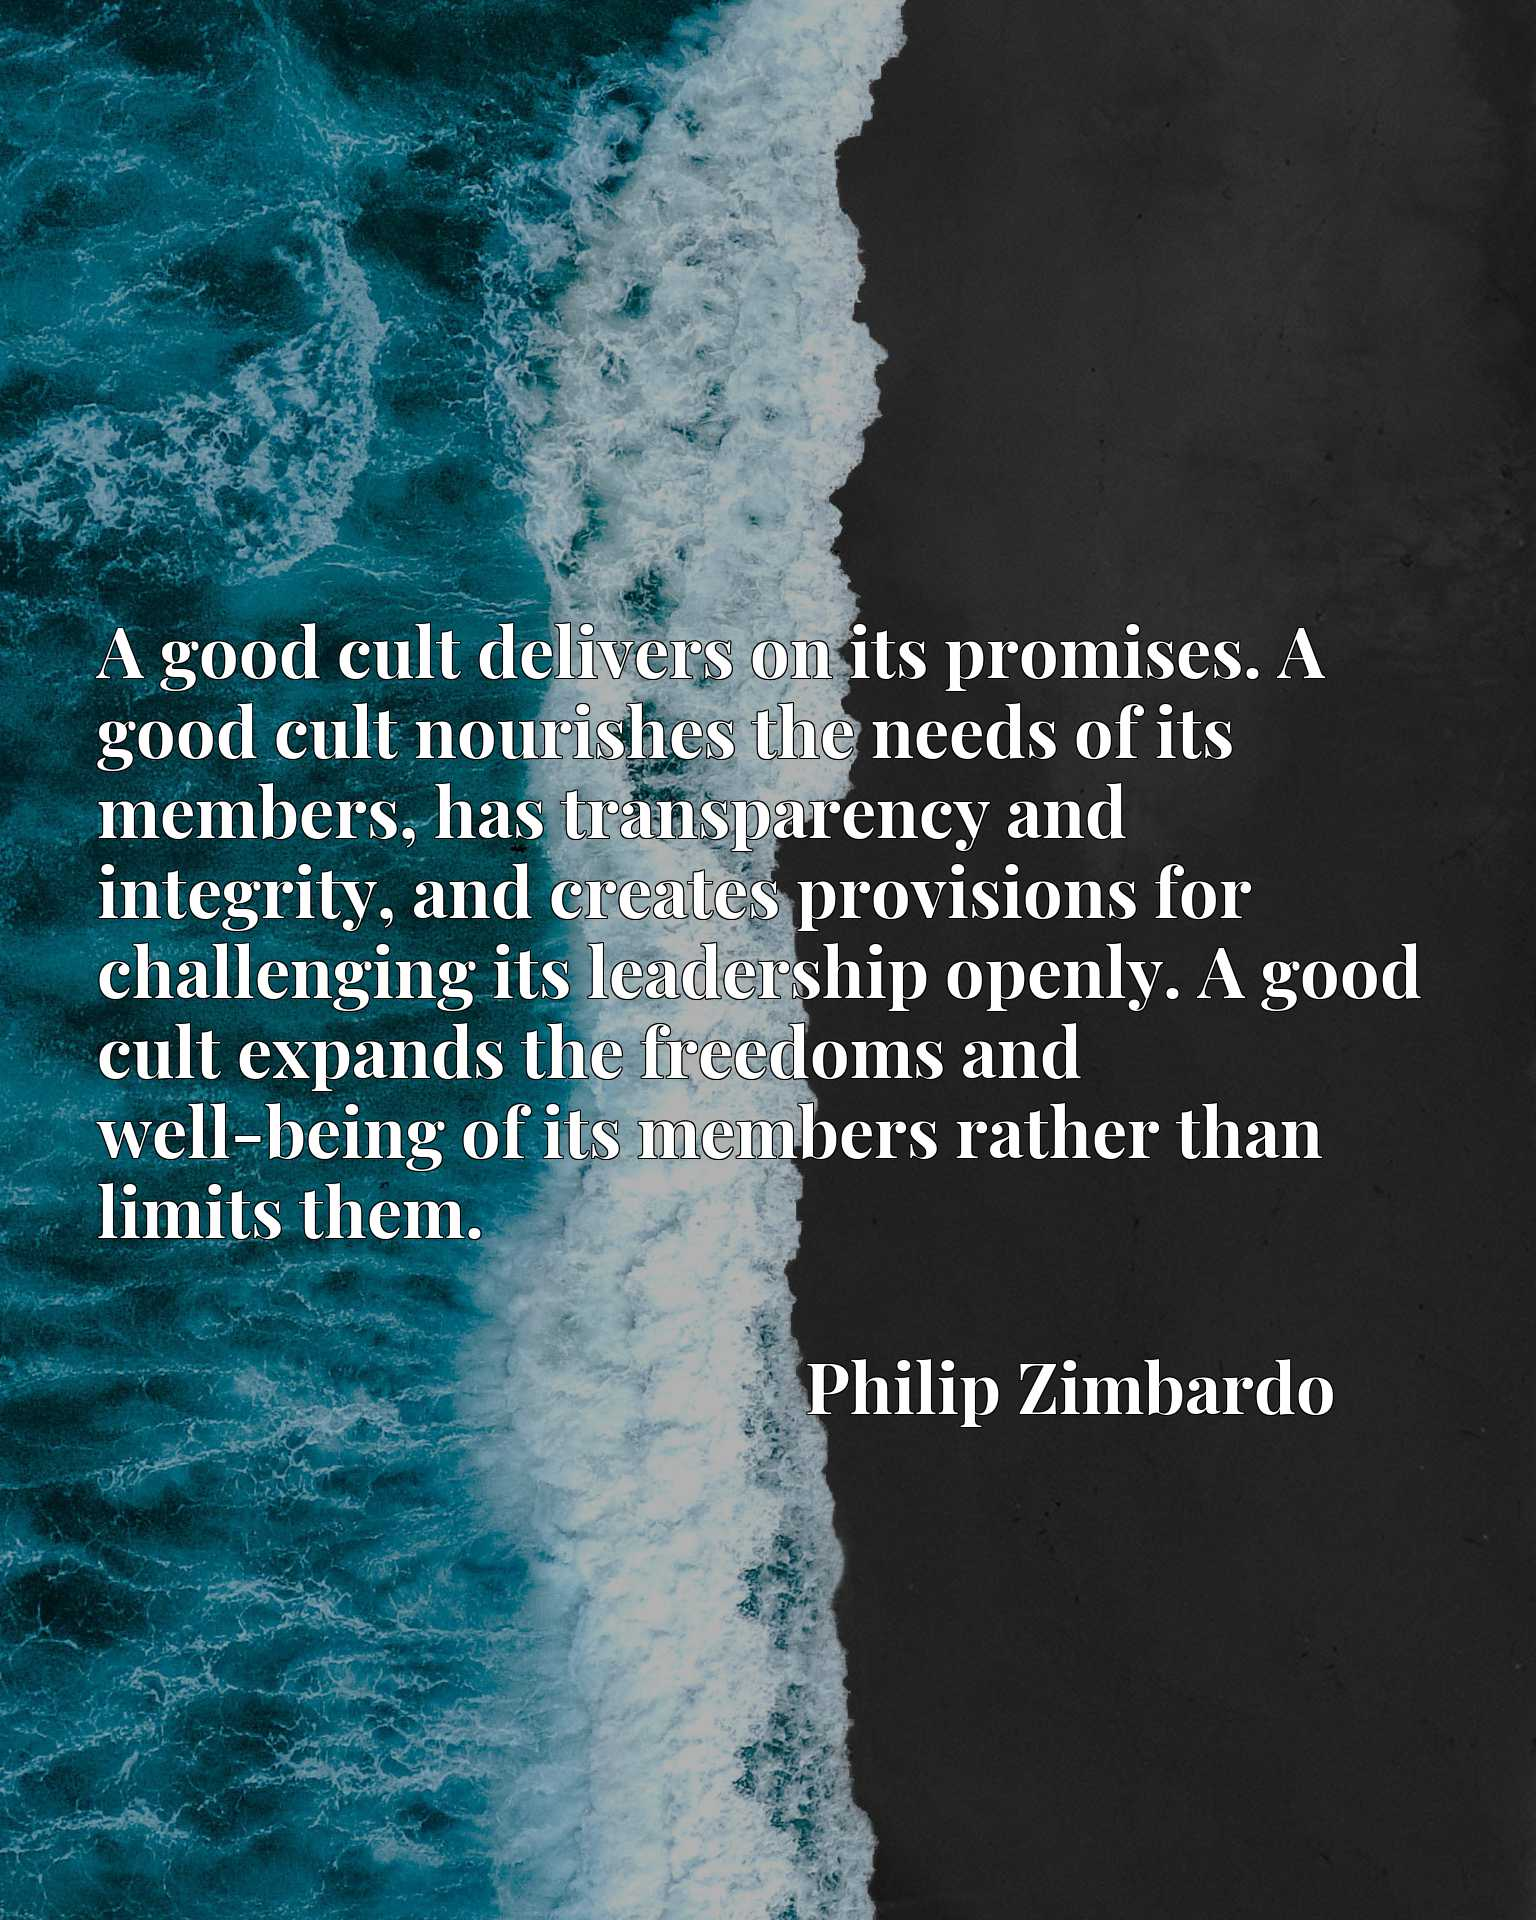 A good cult delivers on its promises. A good cult nourishes the needs of its members, has transparency and integrity, and creates provisions for challenging its leadership openly. A good cult expands the freedoms and well-being of its members rather than limits them.